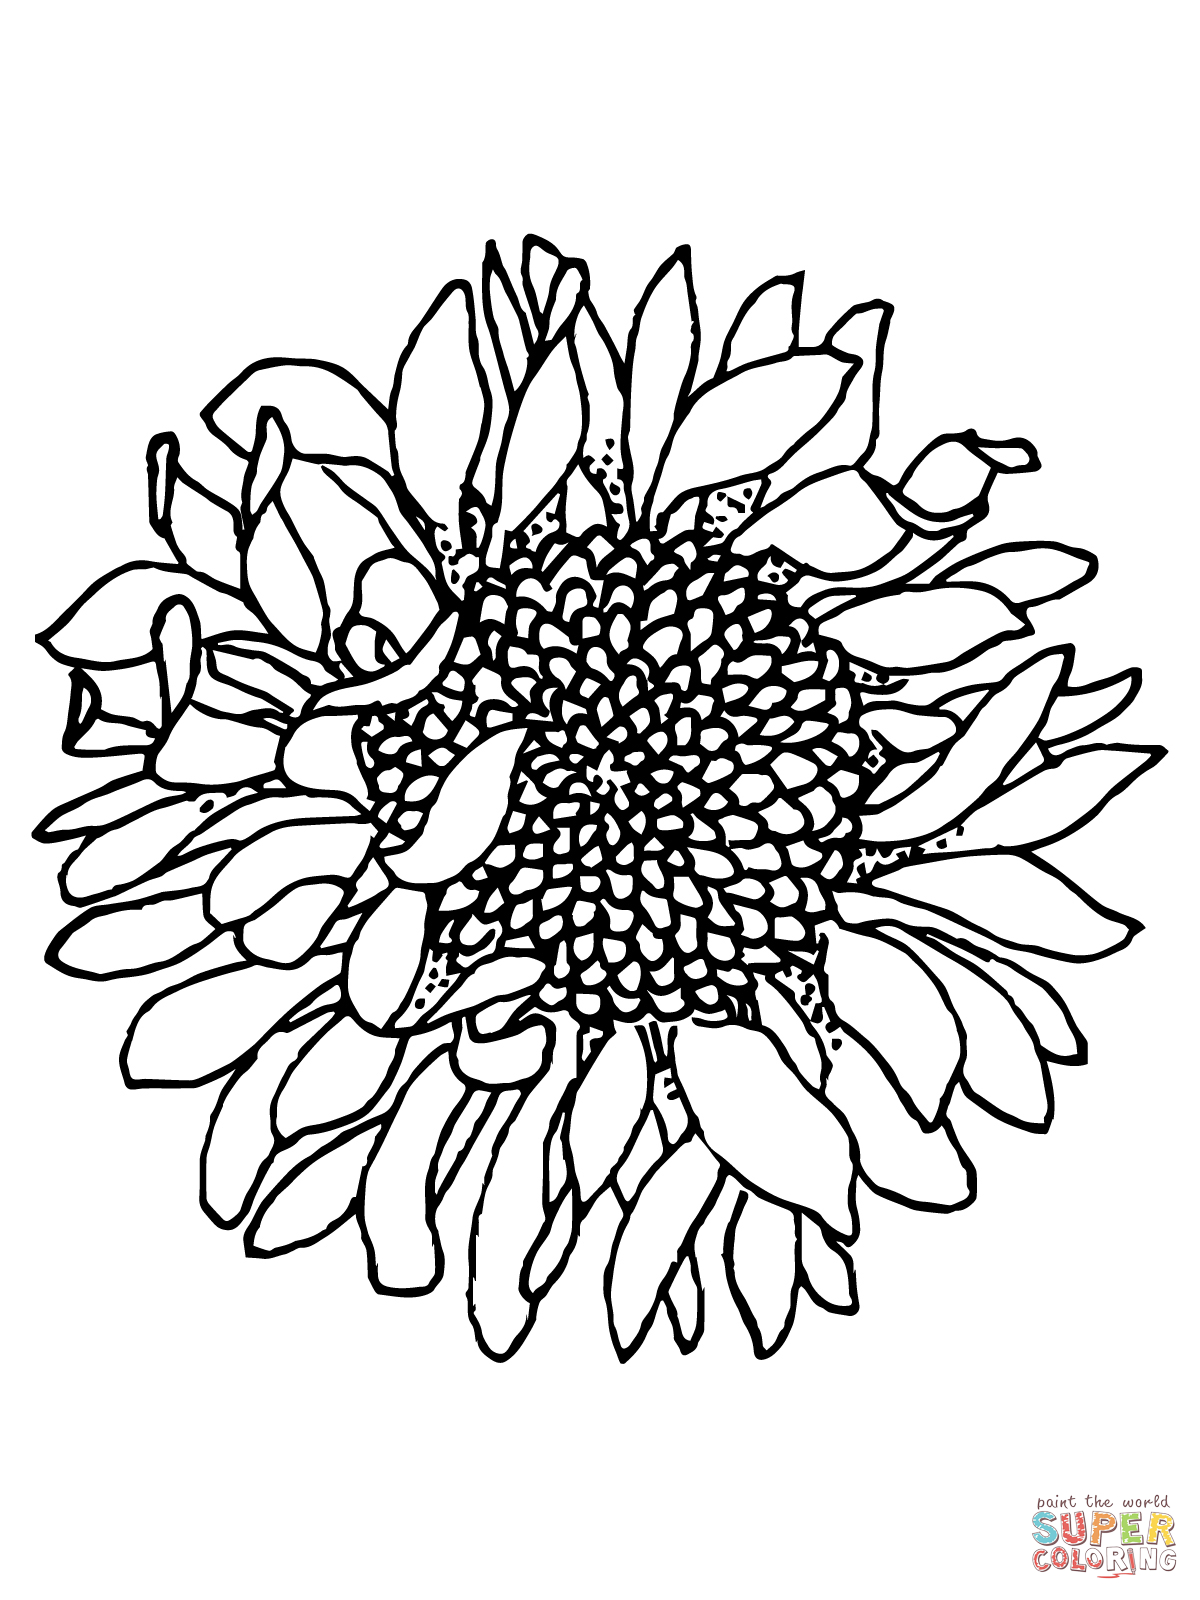 coloring sunflowers printable simple sunflower drawing at getdrawings free download sunflowers printable coloring